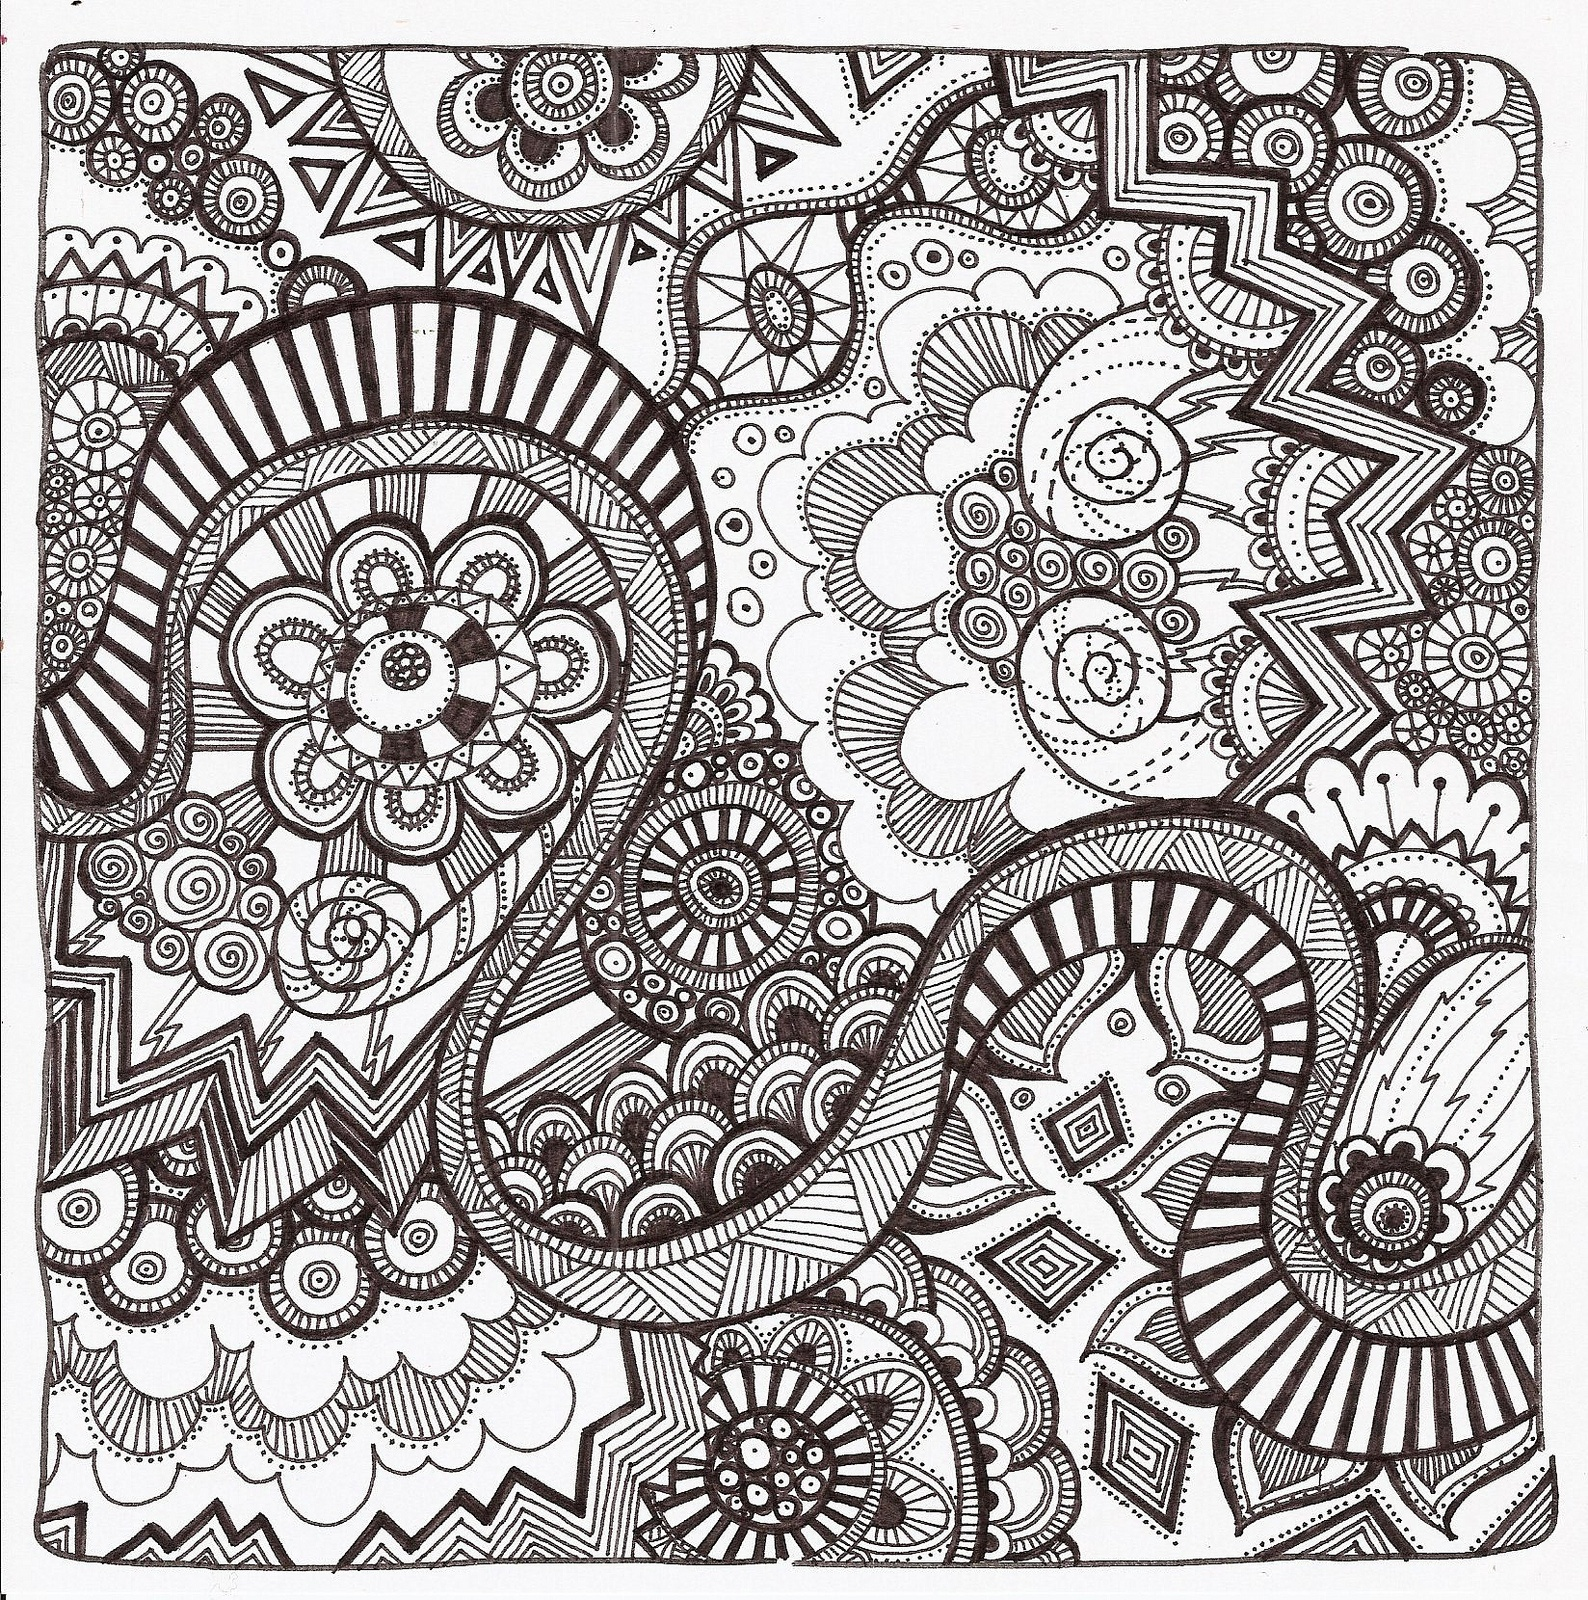 Free Printable Zentangle Coloring Pages For Adults - Free Printable Zen Coloring Pages